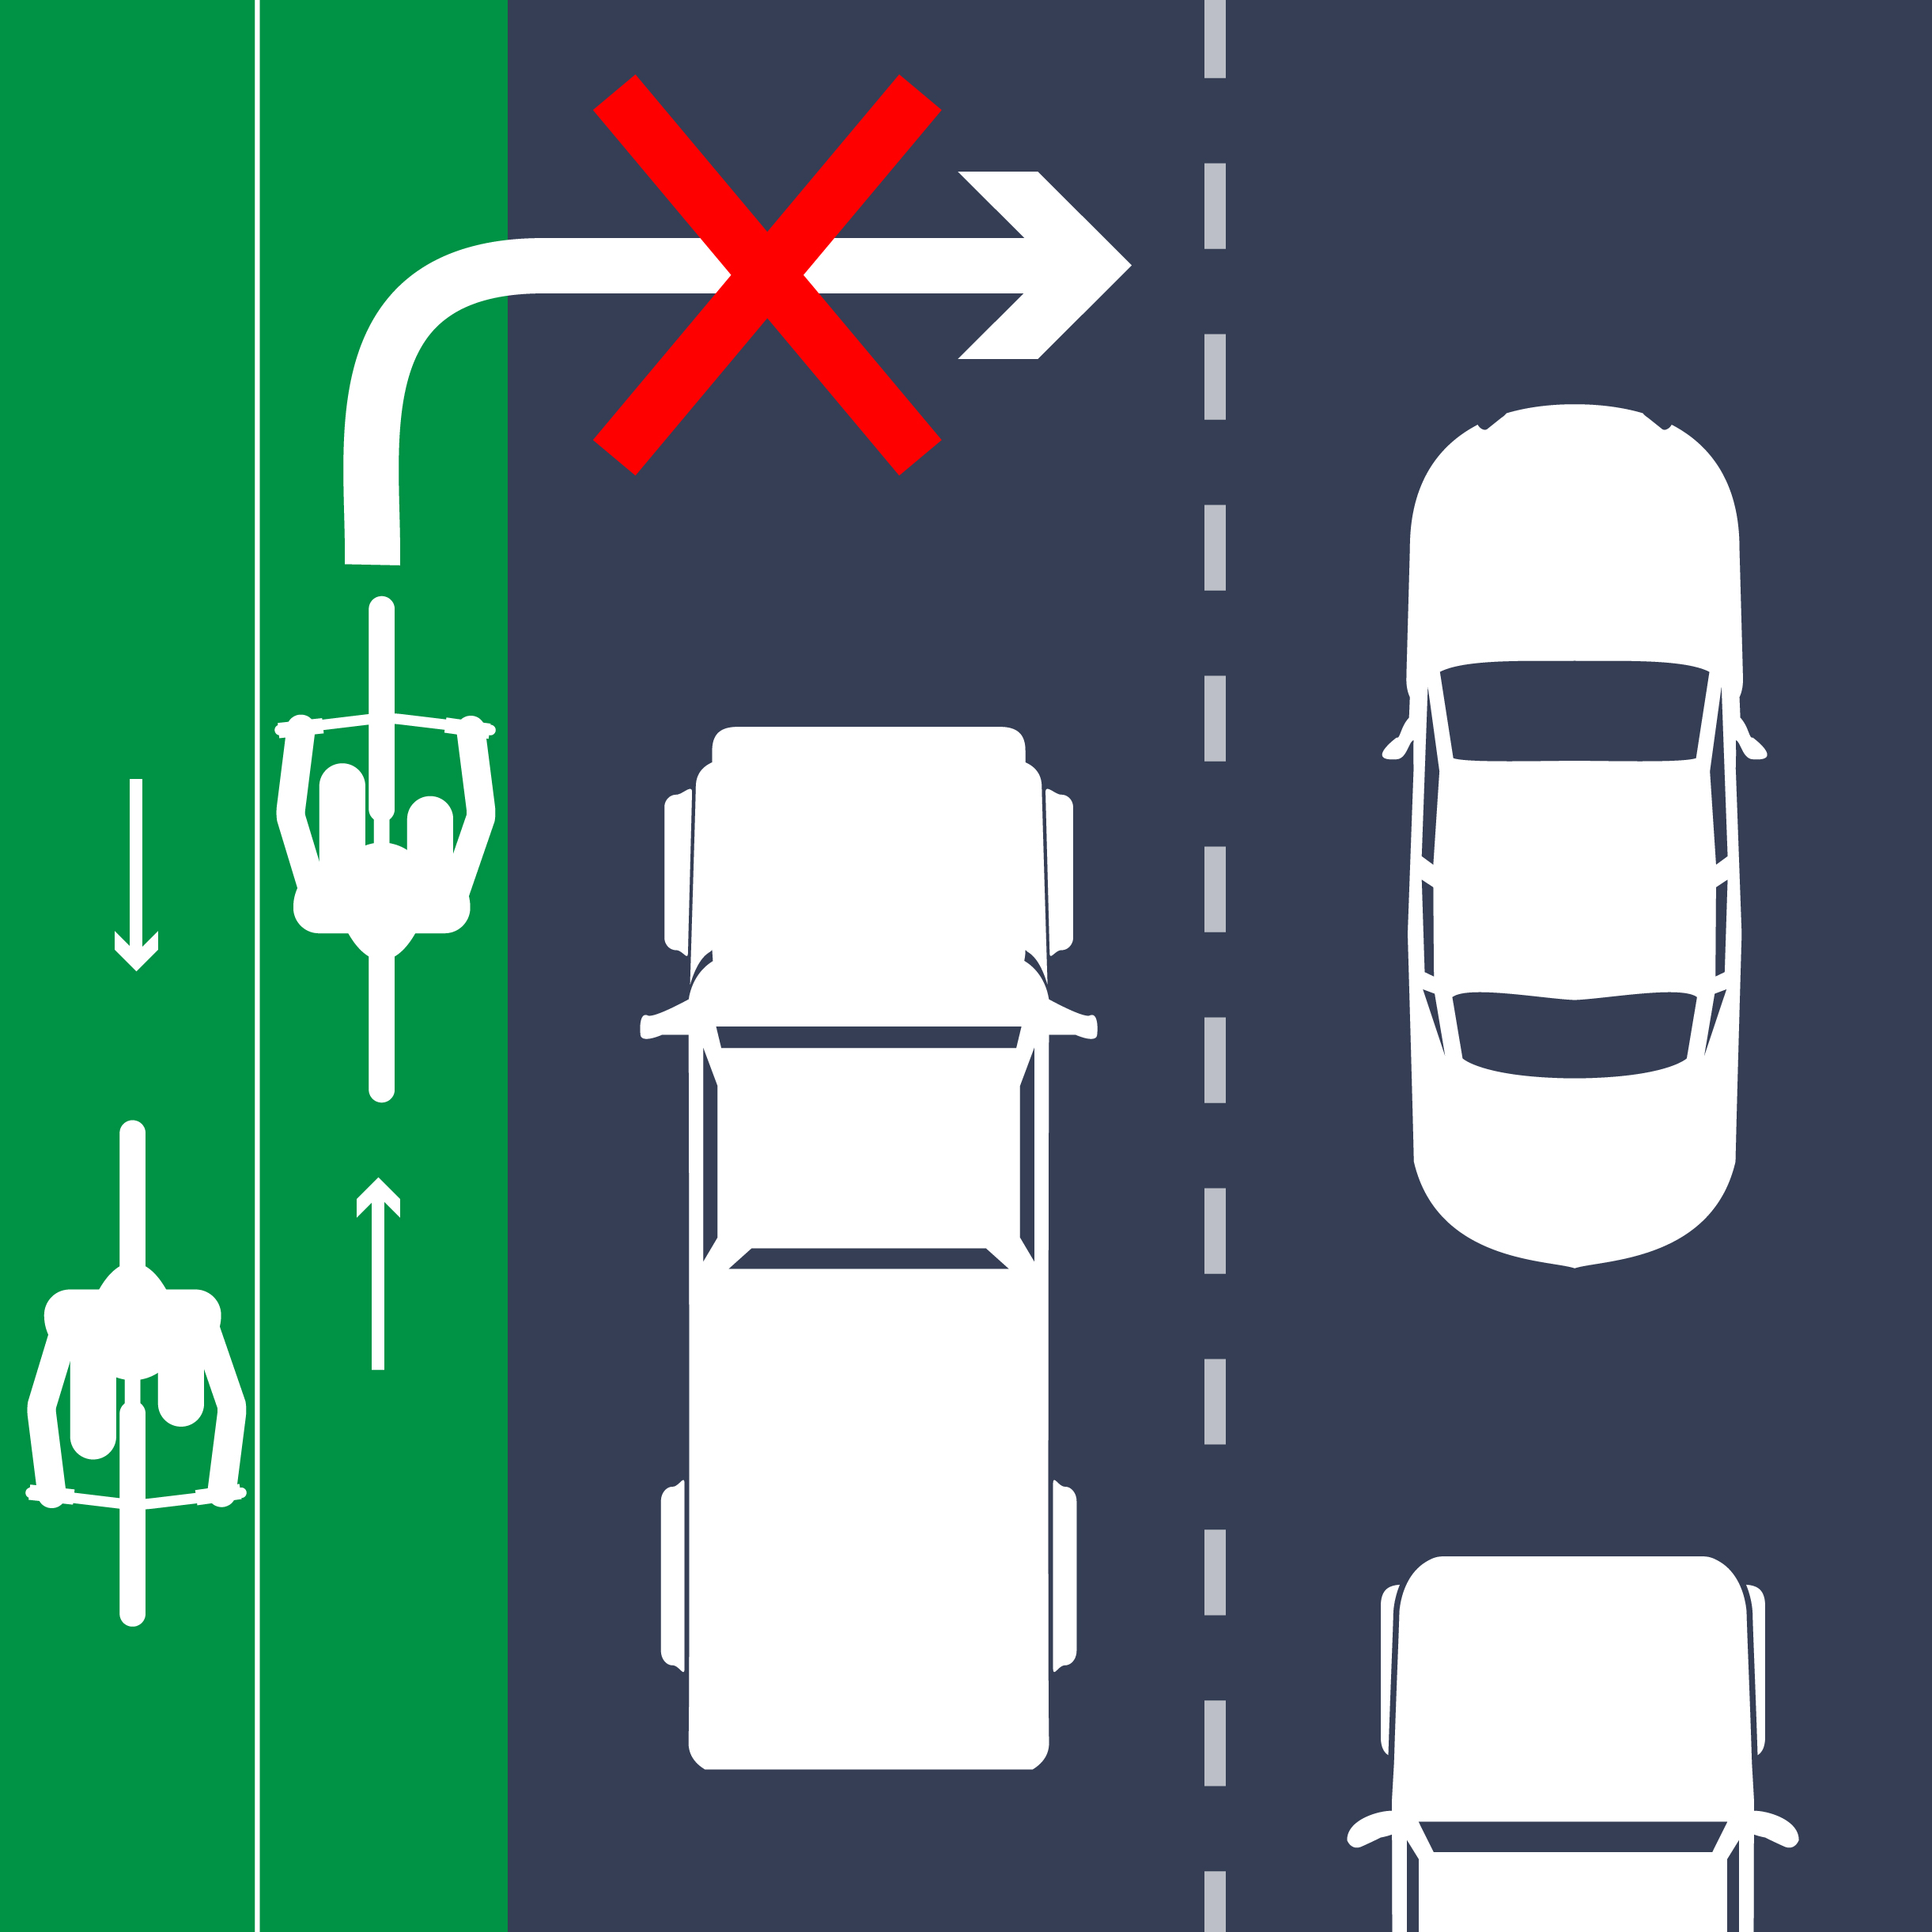 Cyclists should not cross vehicular traffic lanes to turn right.